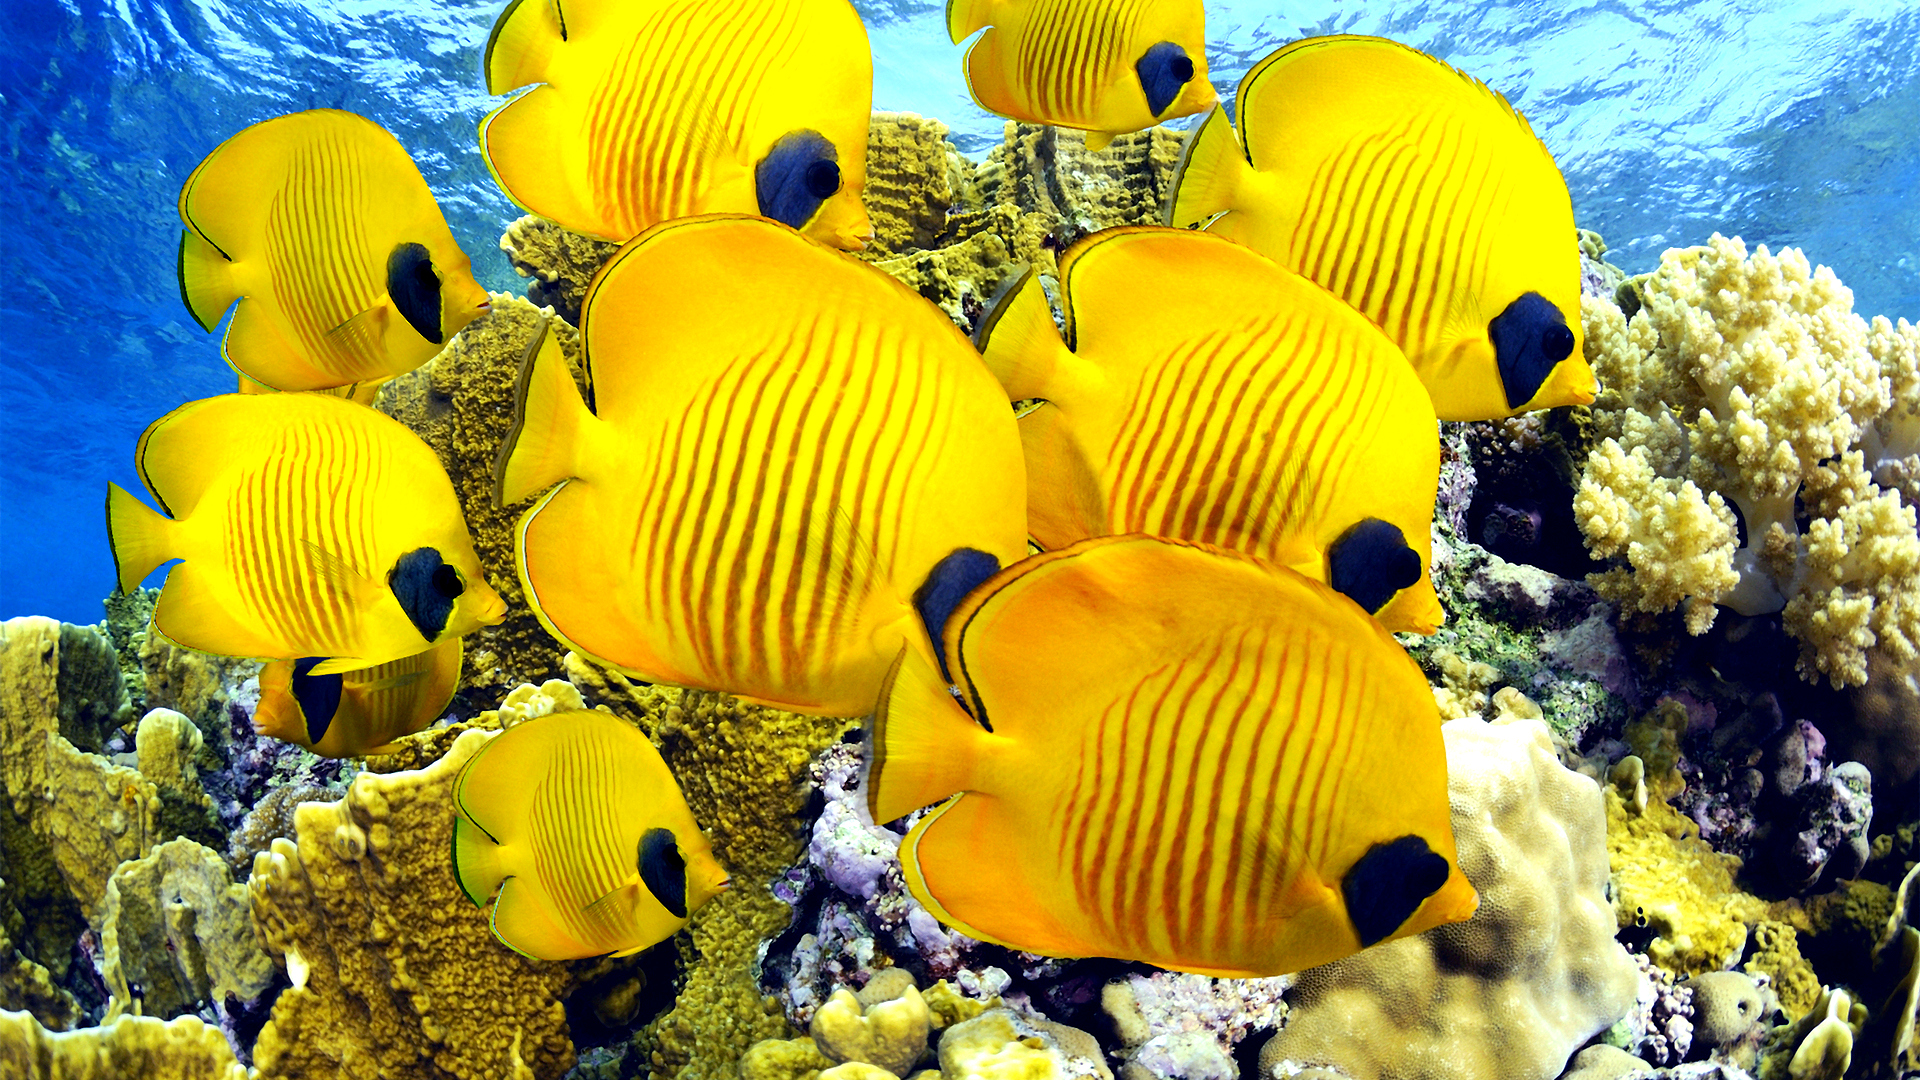 tropic fish - photo #26